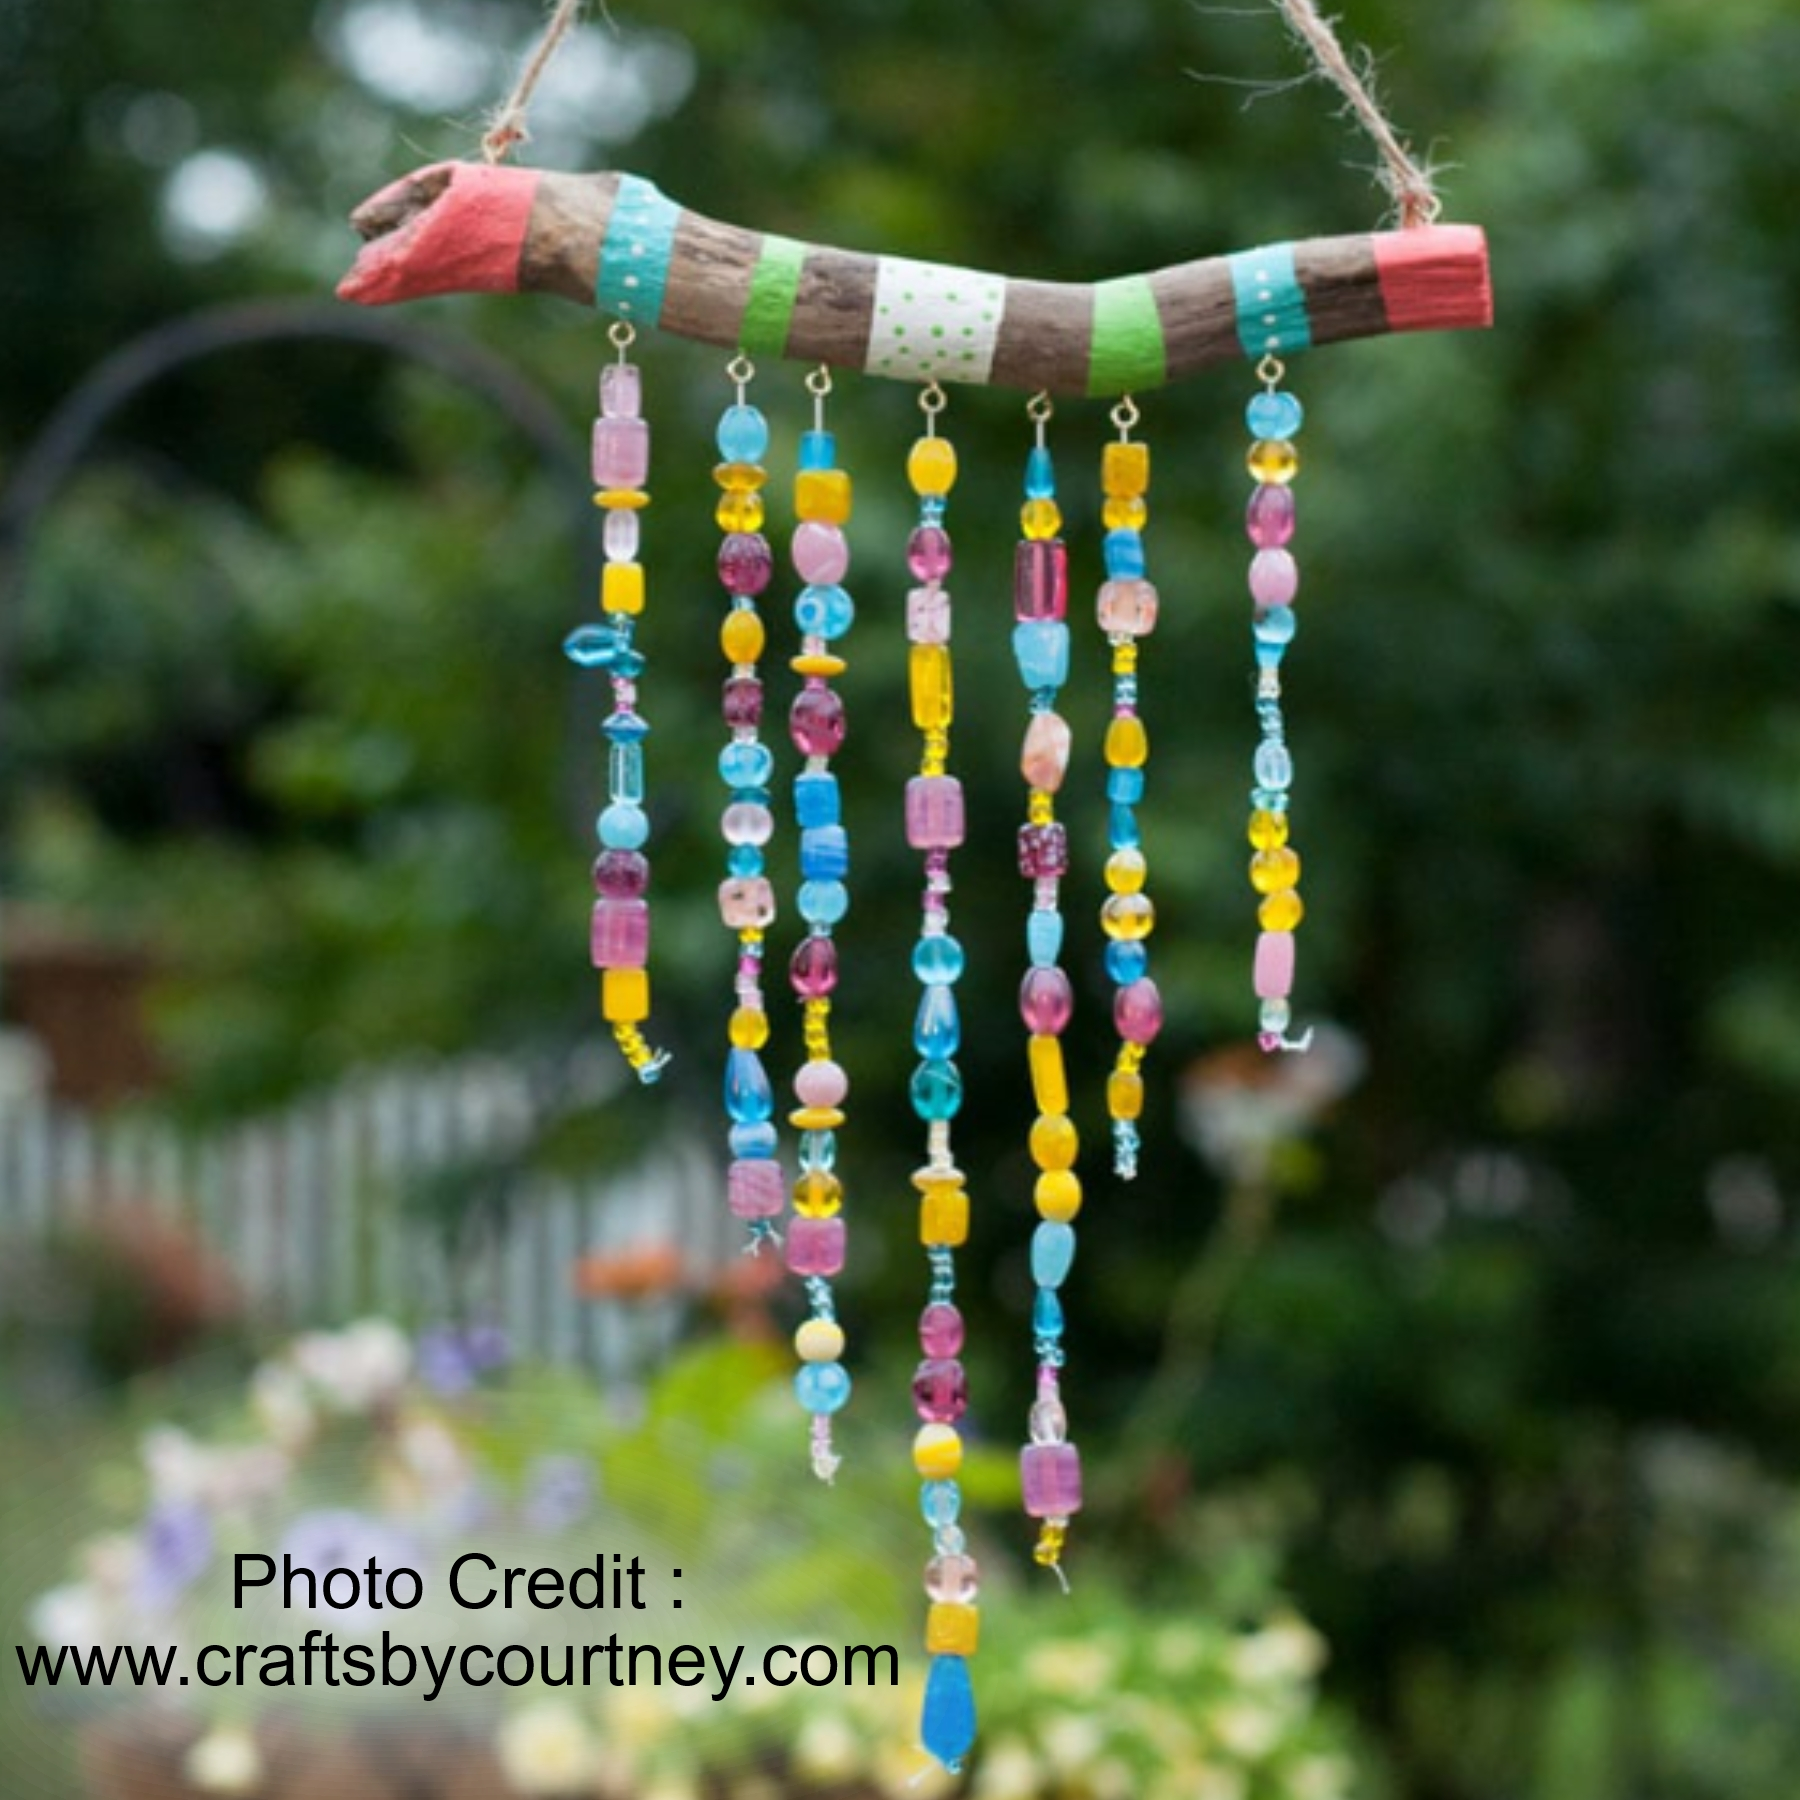 DIY Wind Chimes from Crafts By Courtney